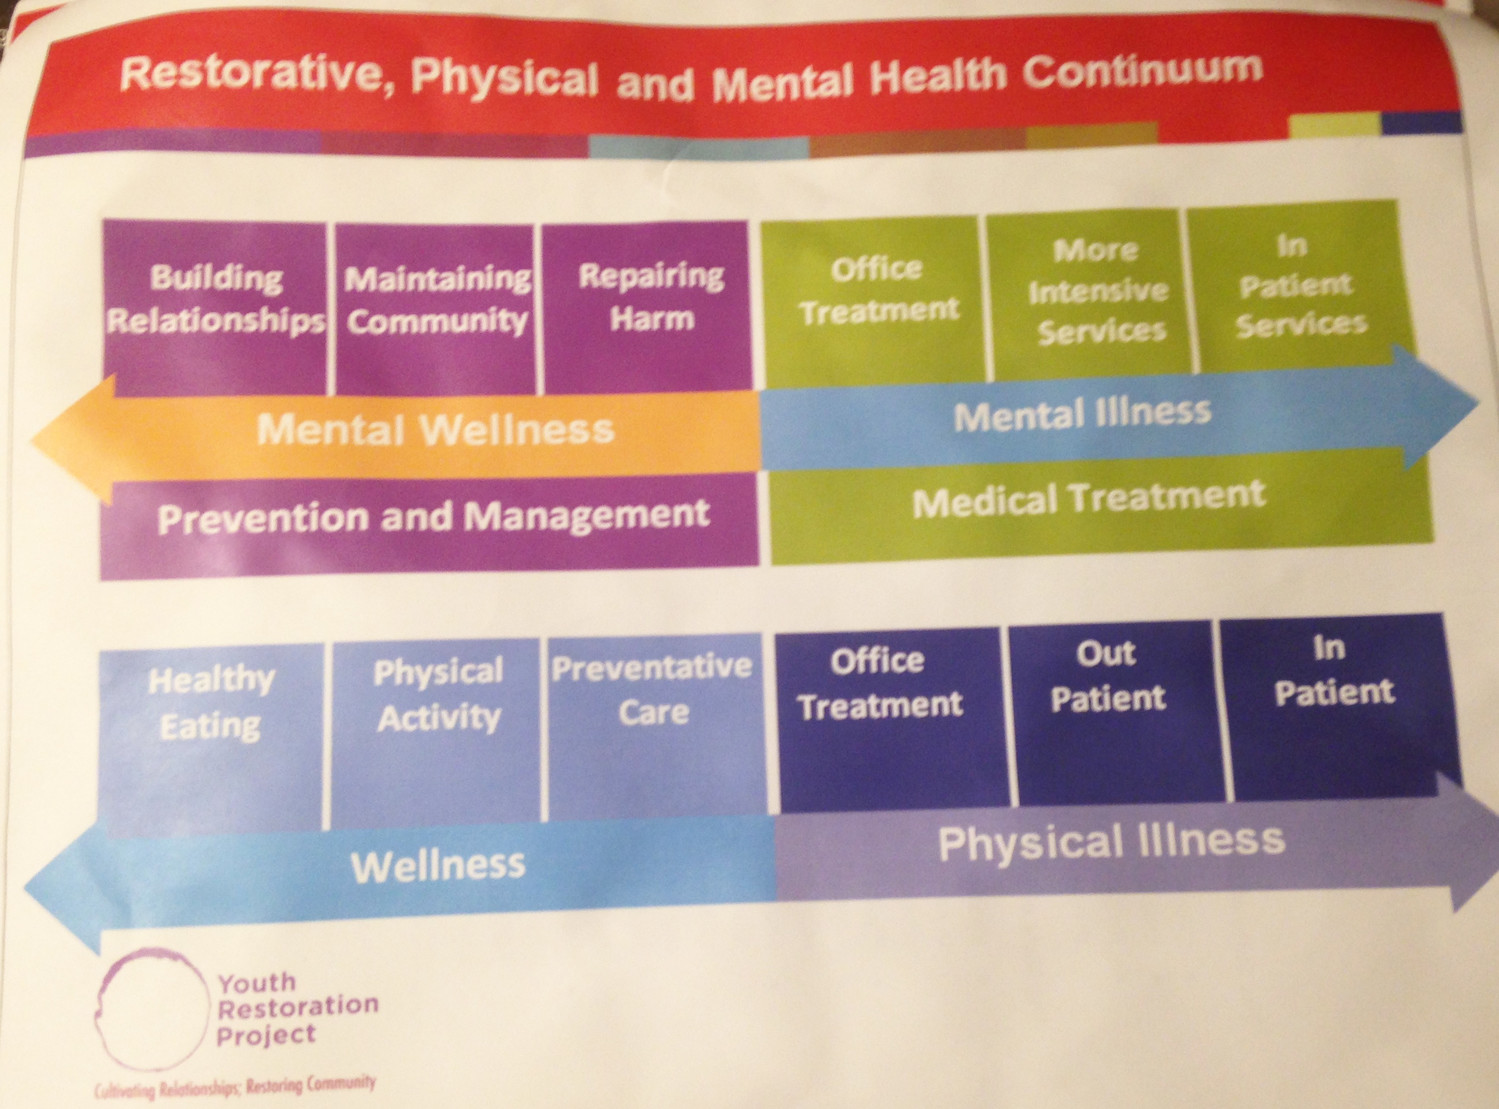 The continuum of restorative, physical and mental health.